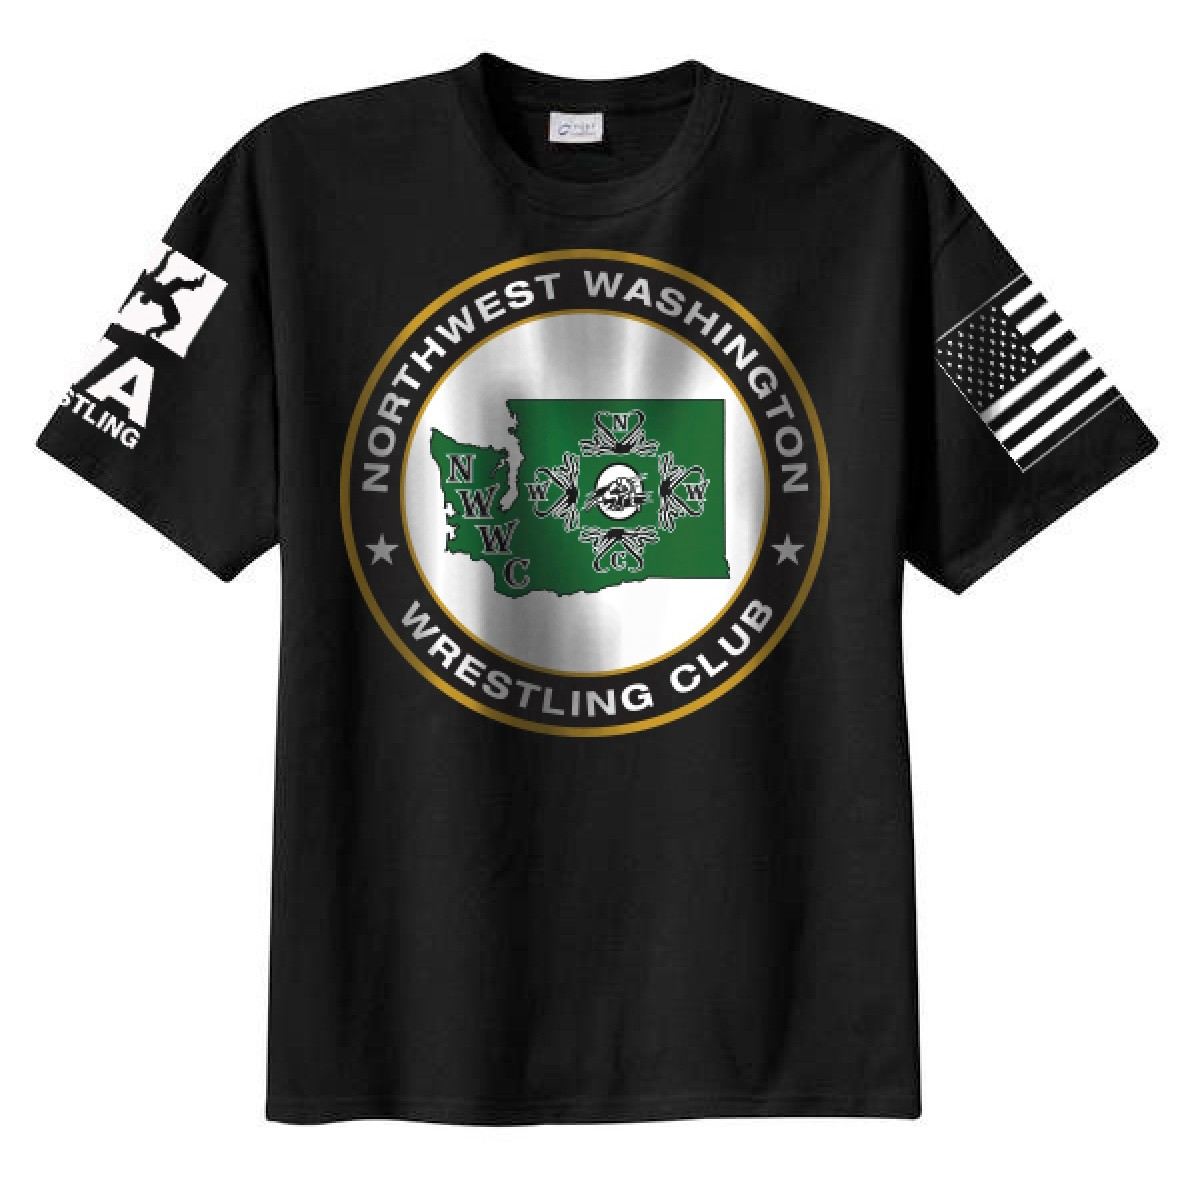 NWWC Black T-Shirt With Green Logo-Black-2XL